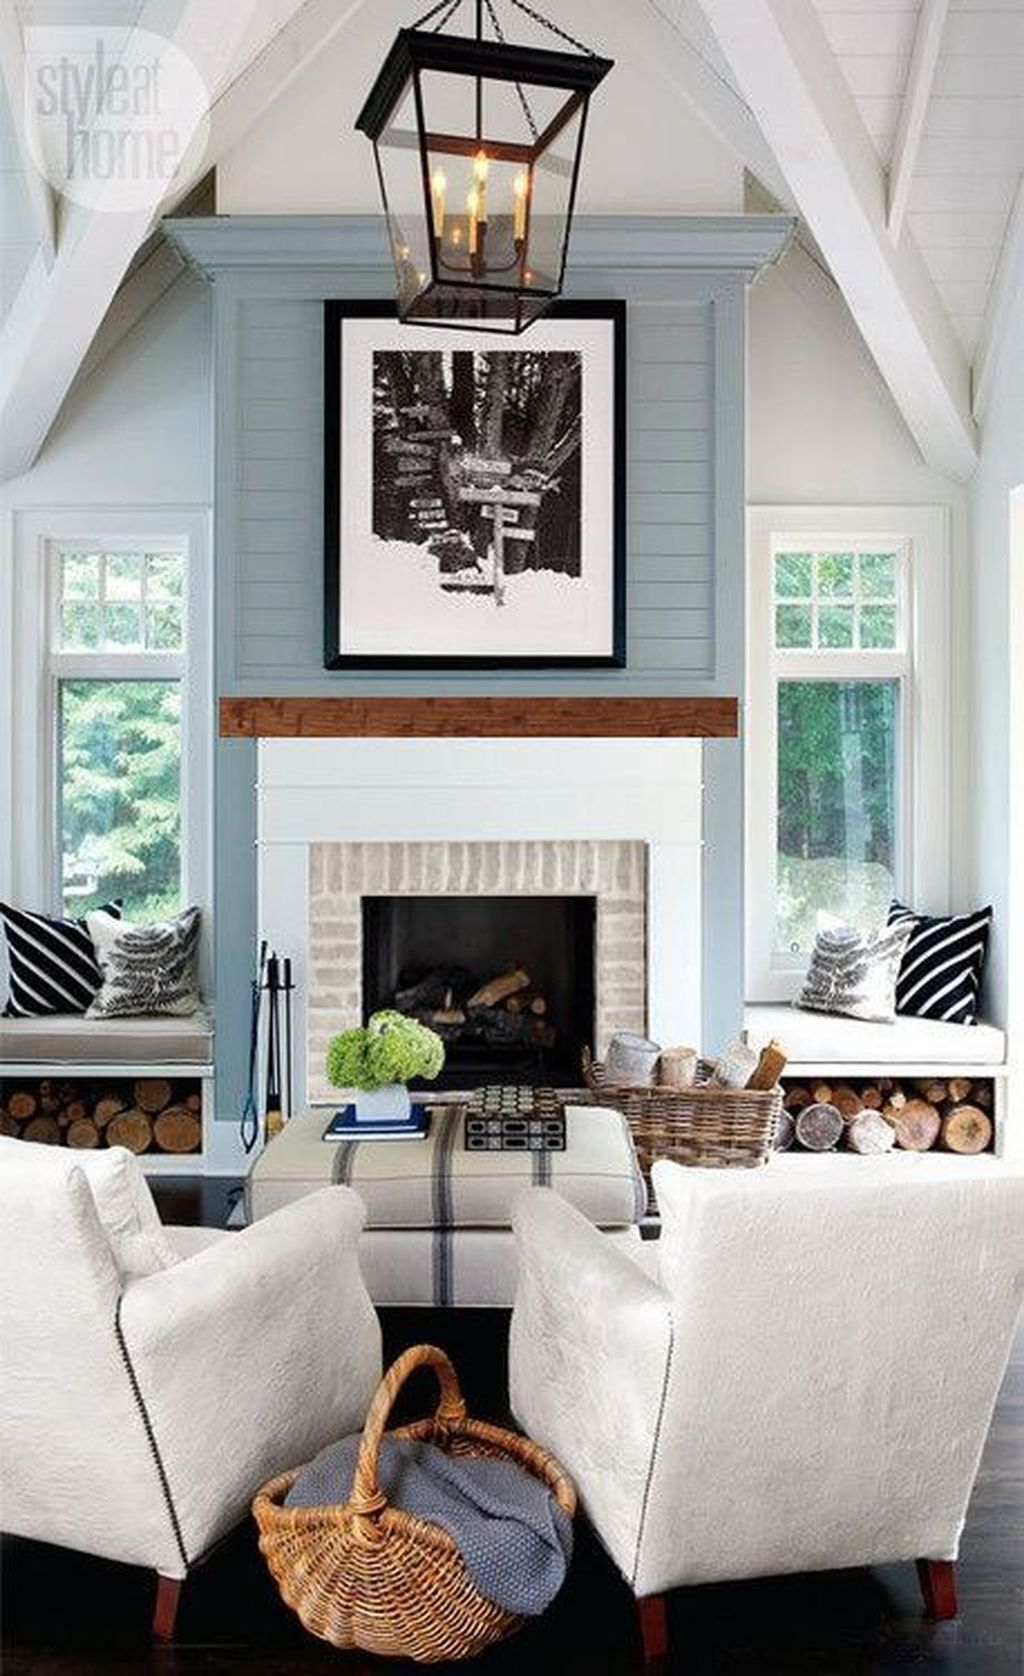 Interior Design Fireplace Living Room: 43 Rustic Brick Fireplace Living Rooms Decorations Ideas